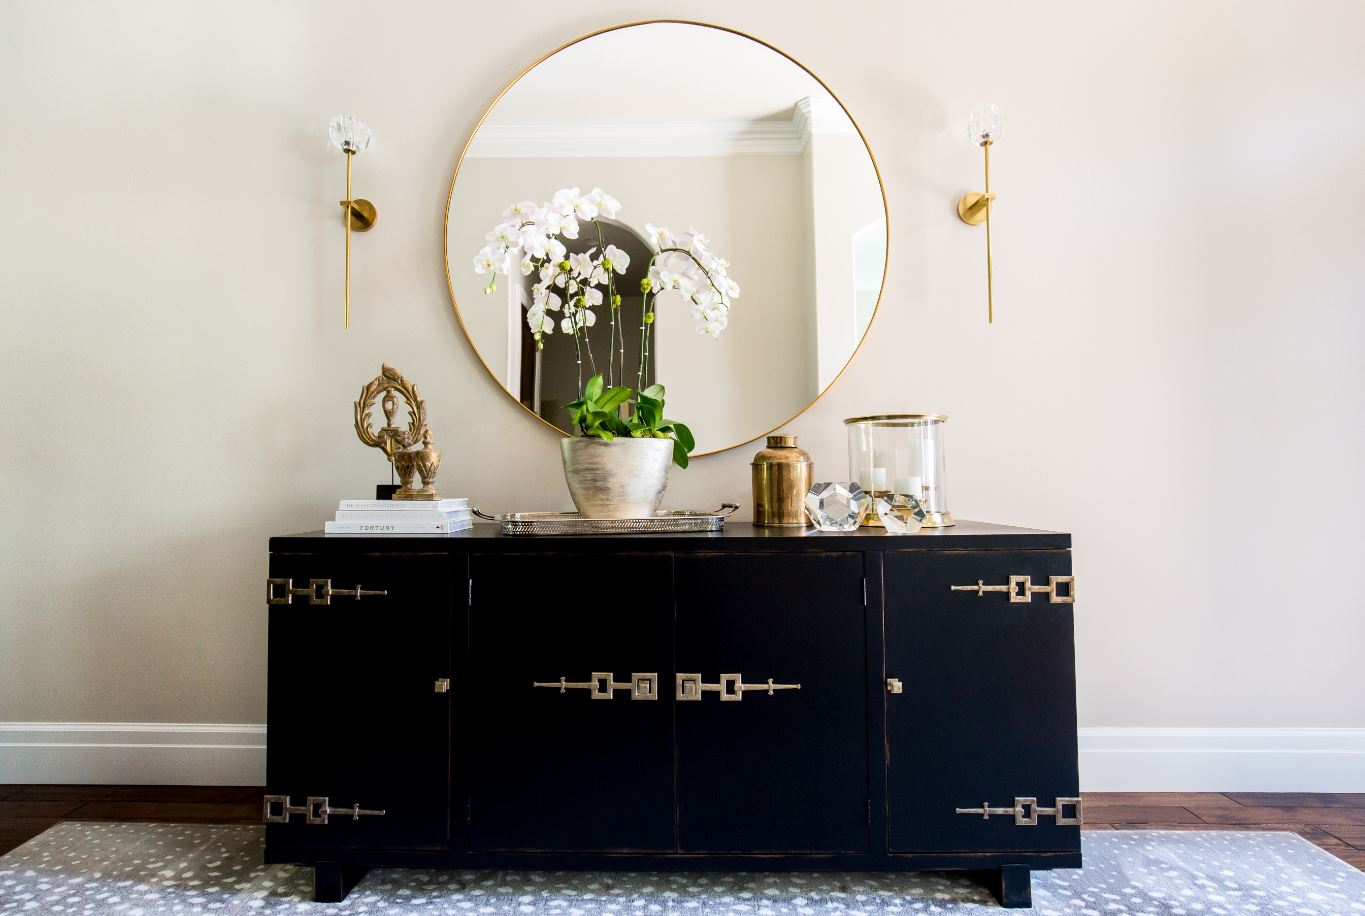 This beautiful sideboard is found in the front entry and we can't get over the gorgeous details! The big round mirror with gold trim was the perfect addition, and we love the delicate feel of the gold sconces!